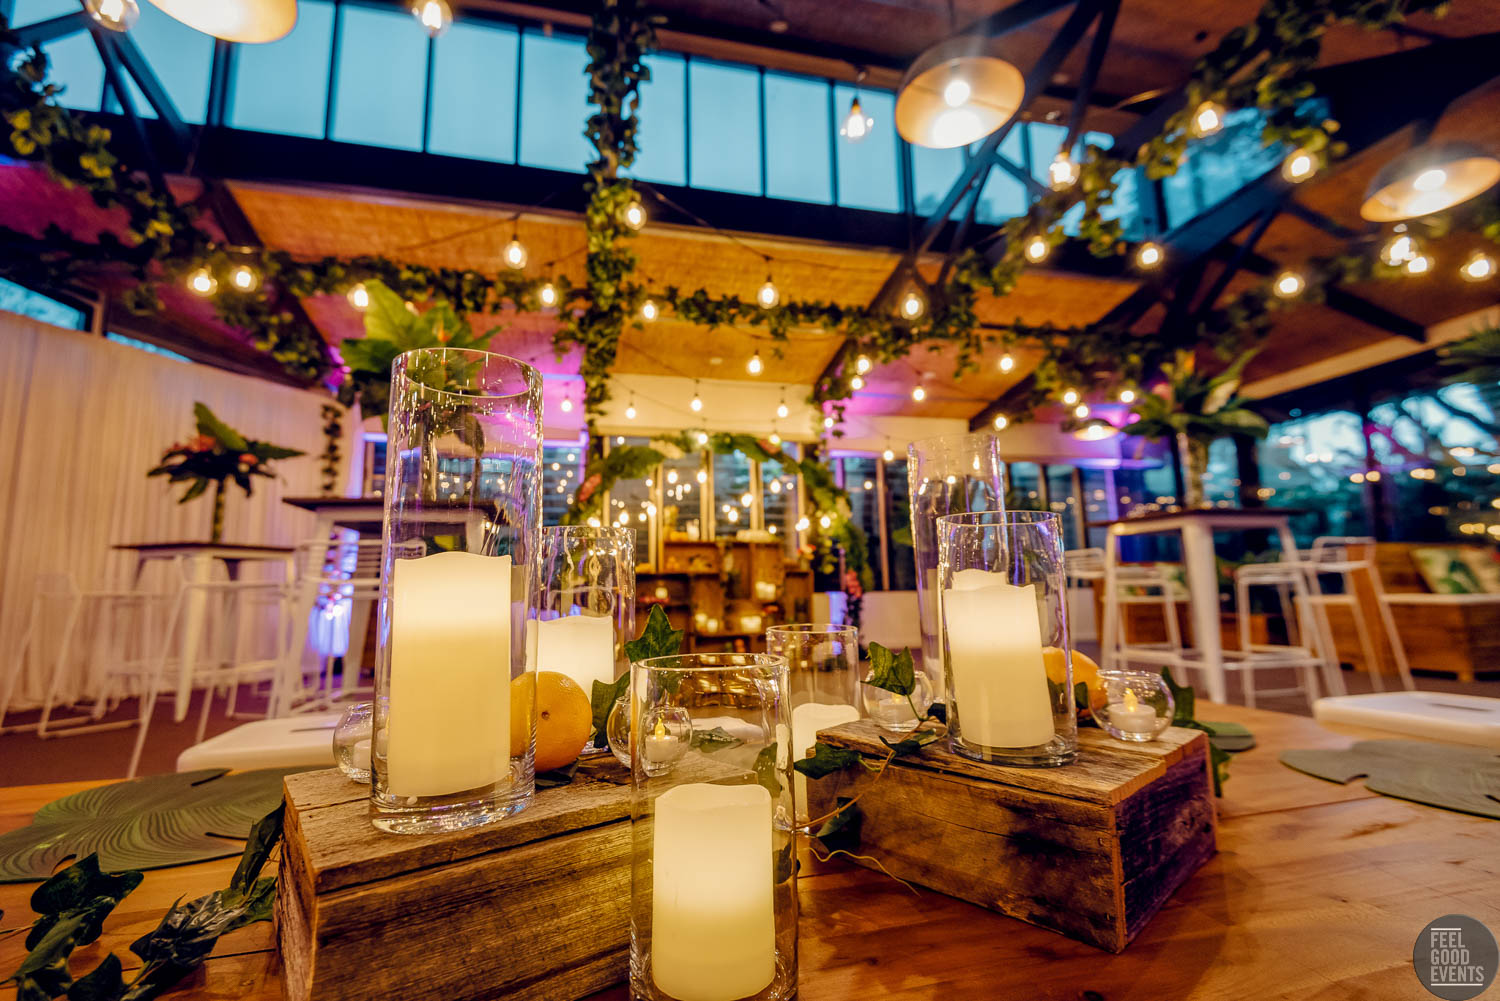 Feel Good Events - Tropical Theme at Melbourne Zoo | Prop Pose